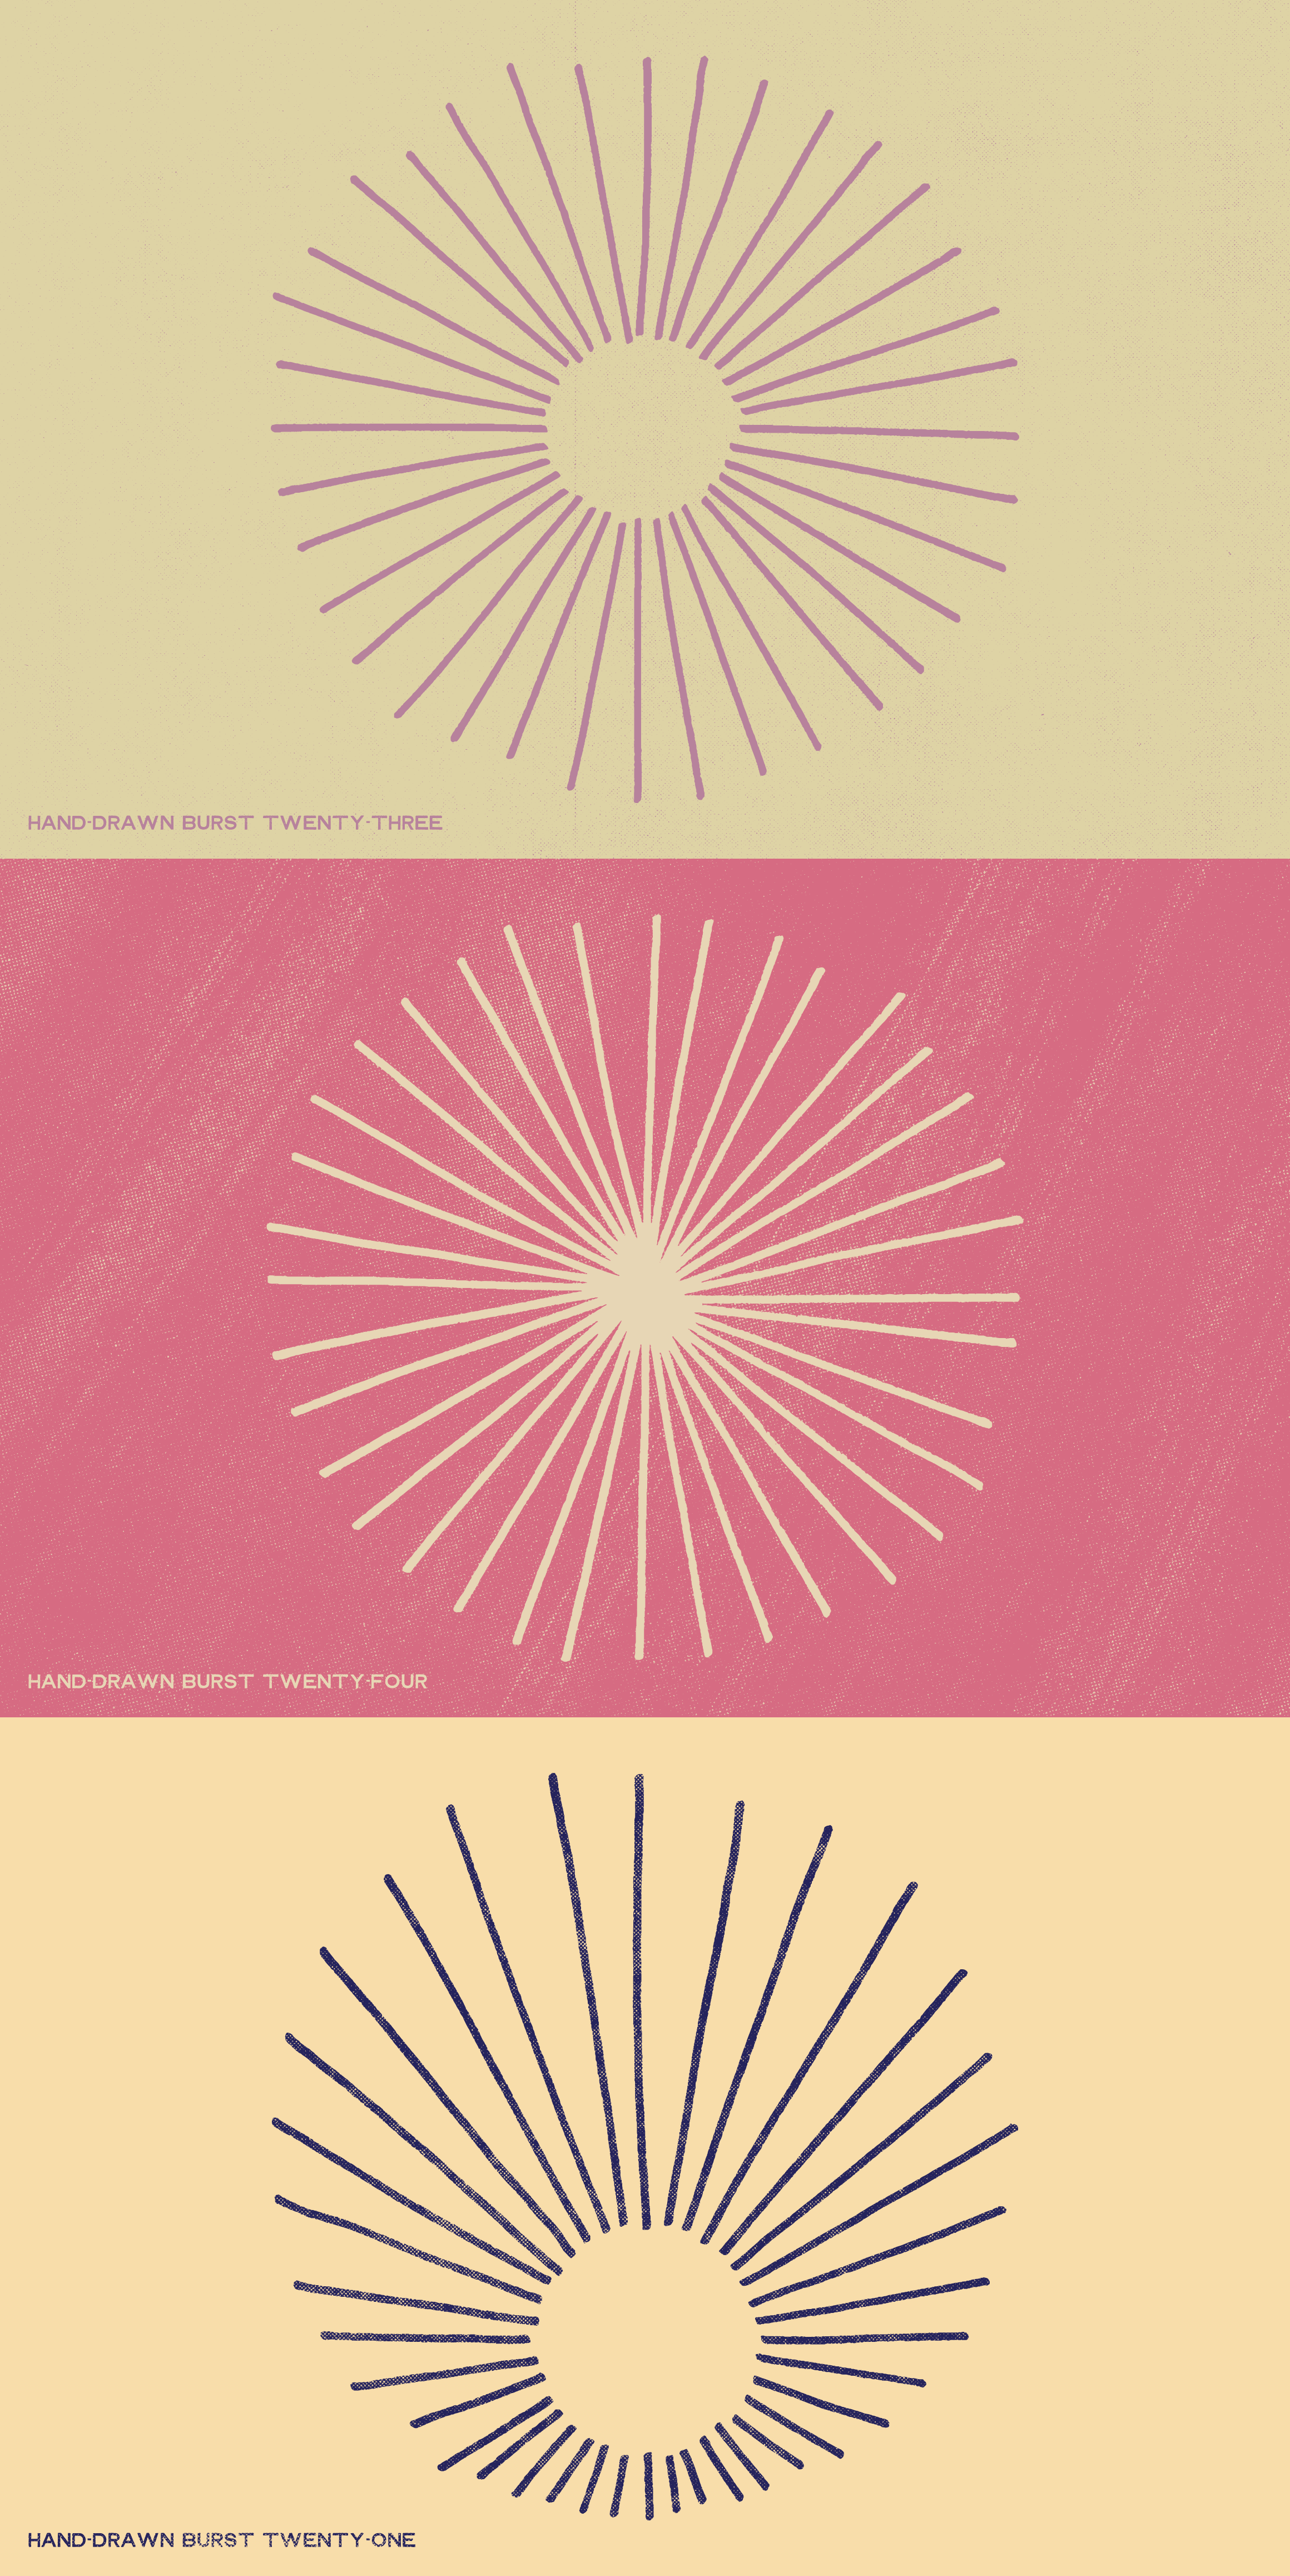 The shop hand drawn burst elements prvs c1r1 dribbble stacked 04